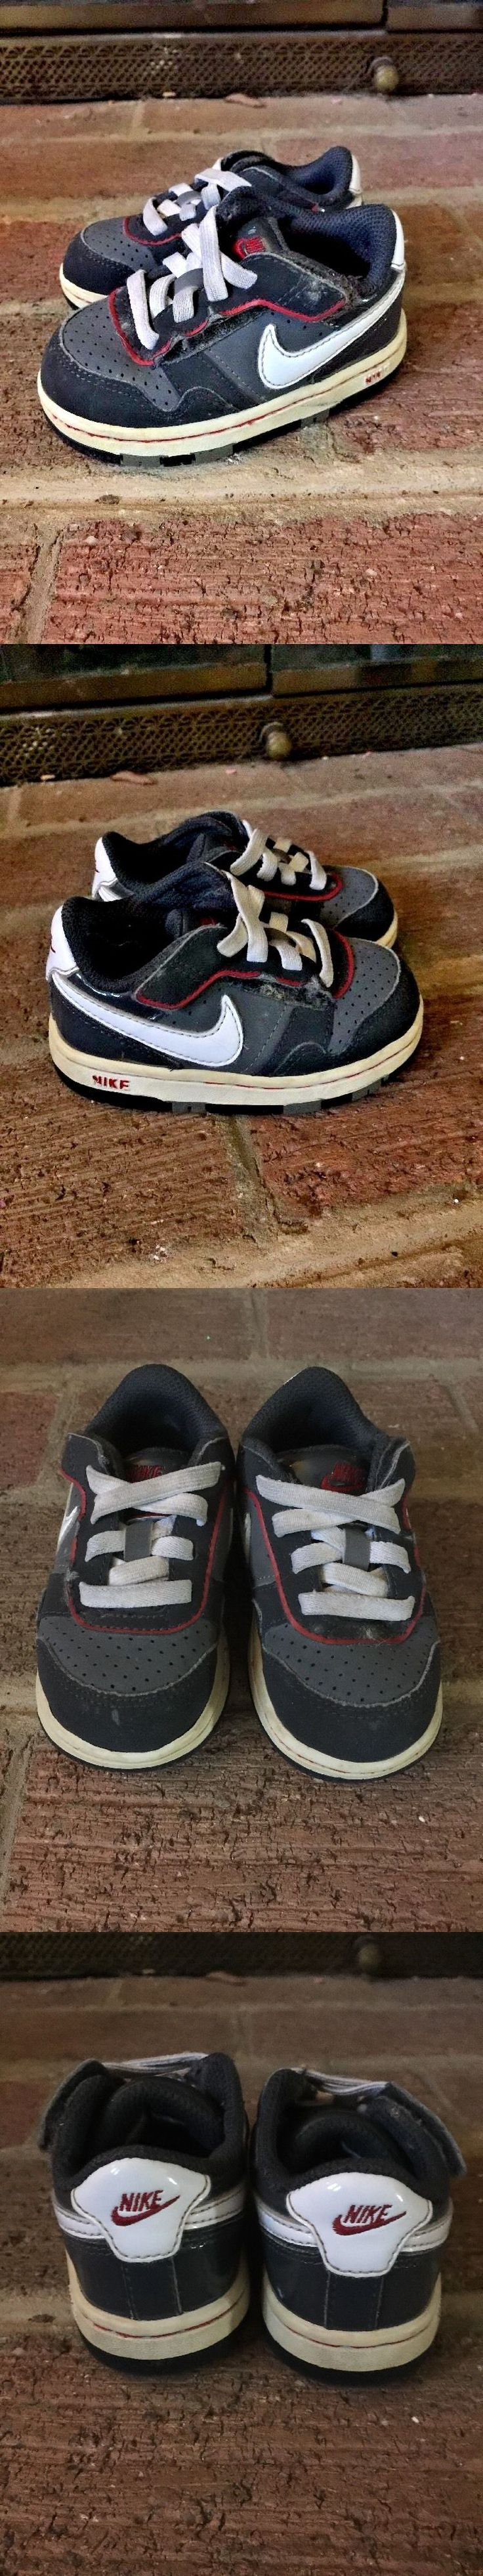 Michael Jordan Baby Clothing: Nike Air Max Michael Jordan Leather Athletic Tennis Shoes Toddler Boys Sz 5 C ? -> BUY IT NOW ONLY: $39 on eBay!